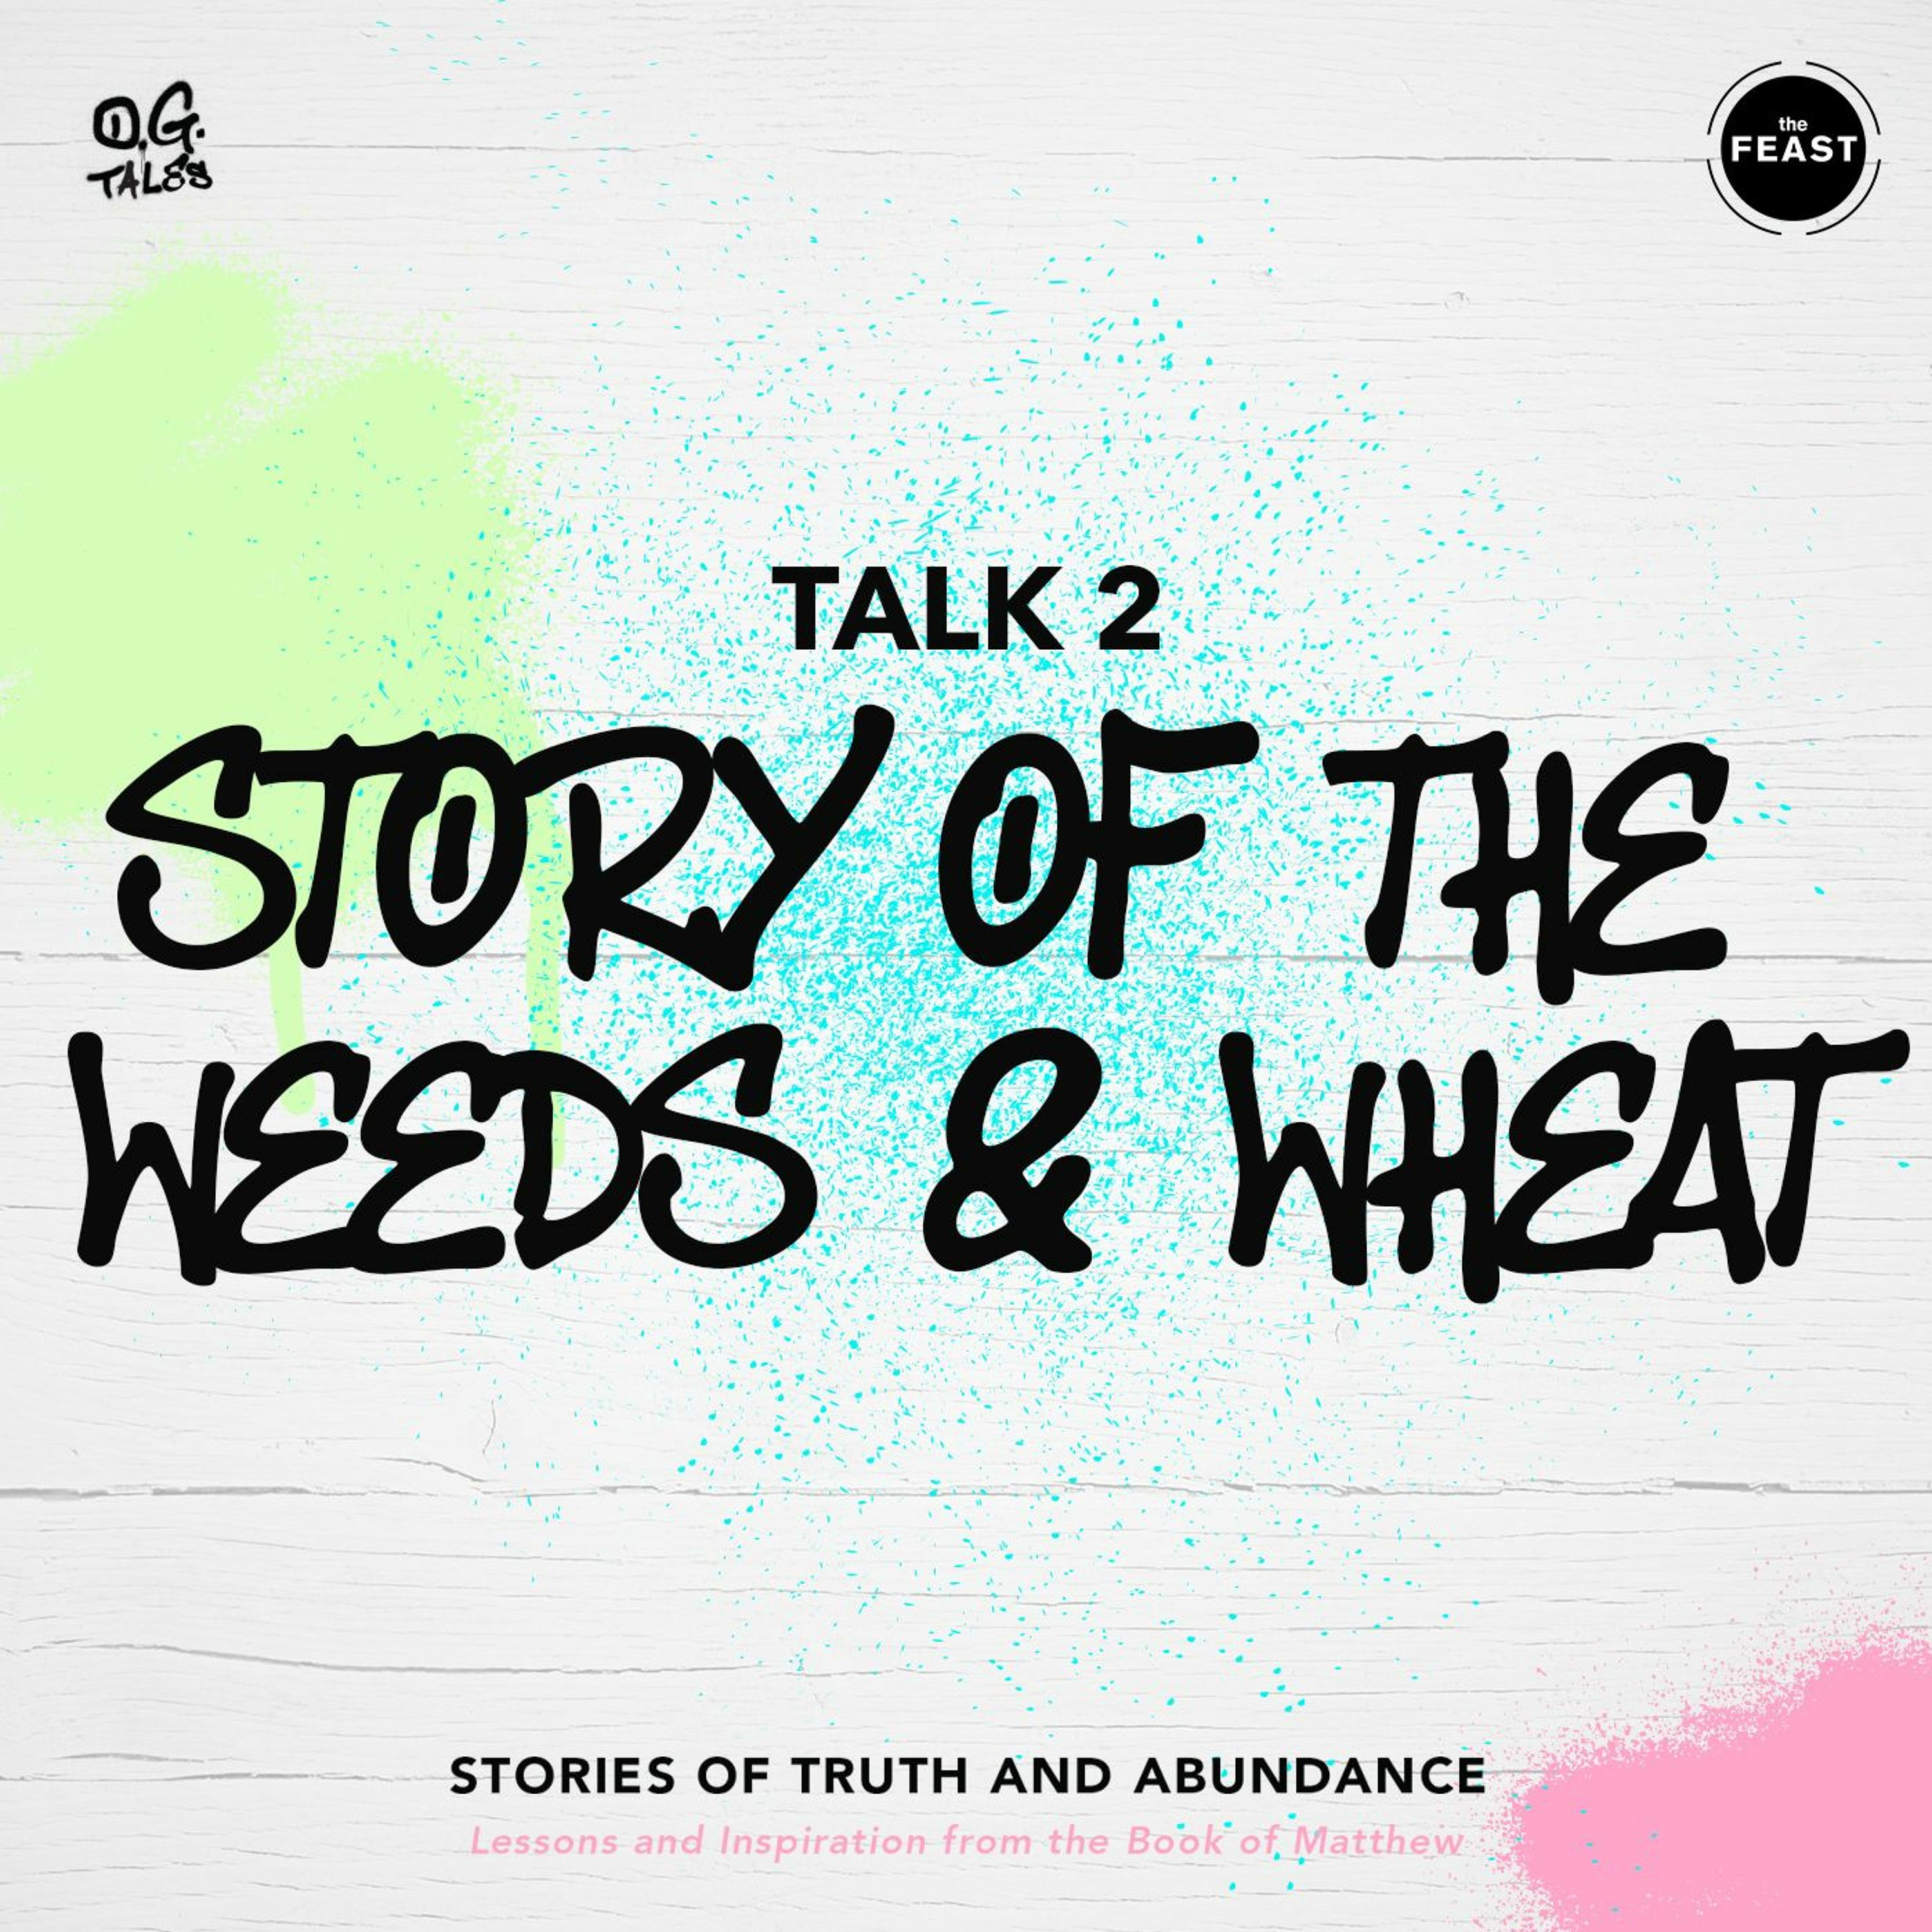 OG Tales Talk 2: STORY OF THE WEEDS AND WHEAT